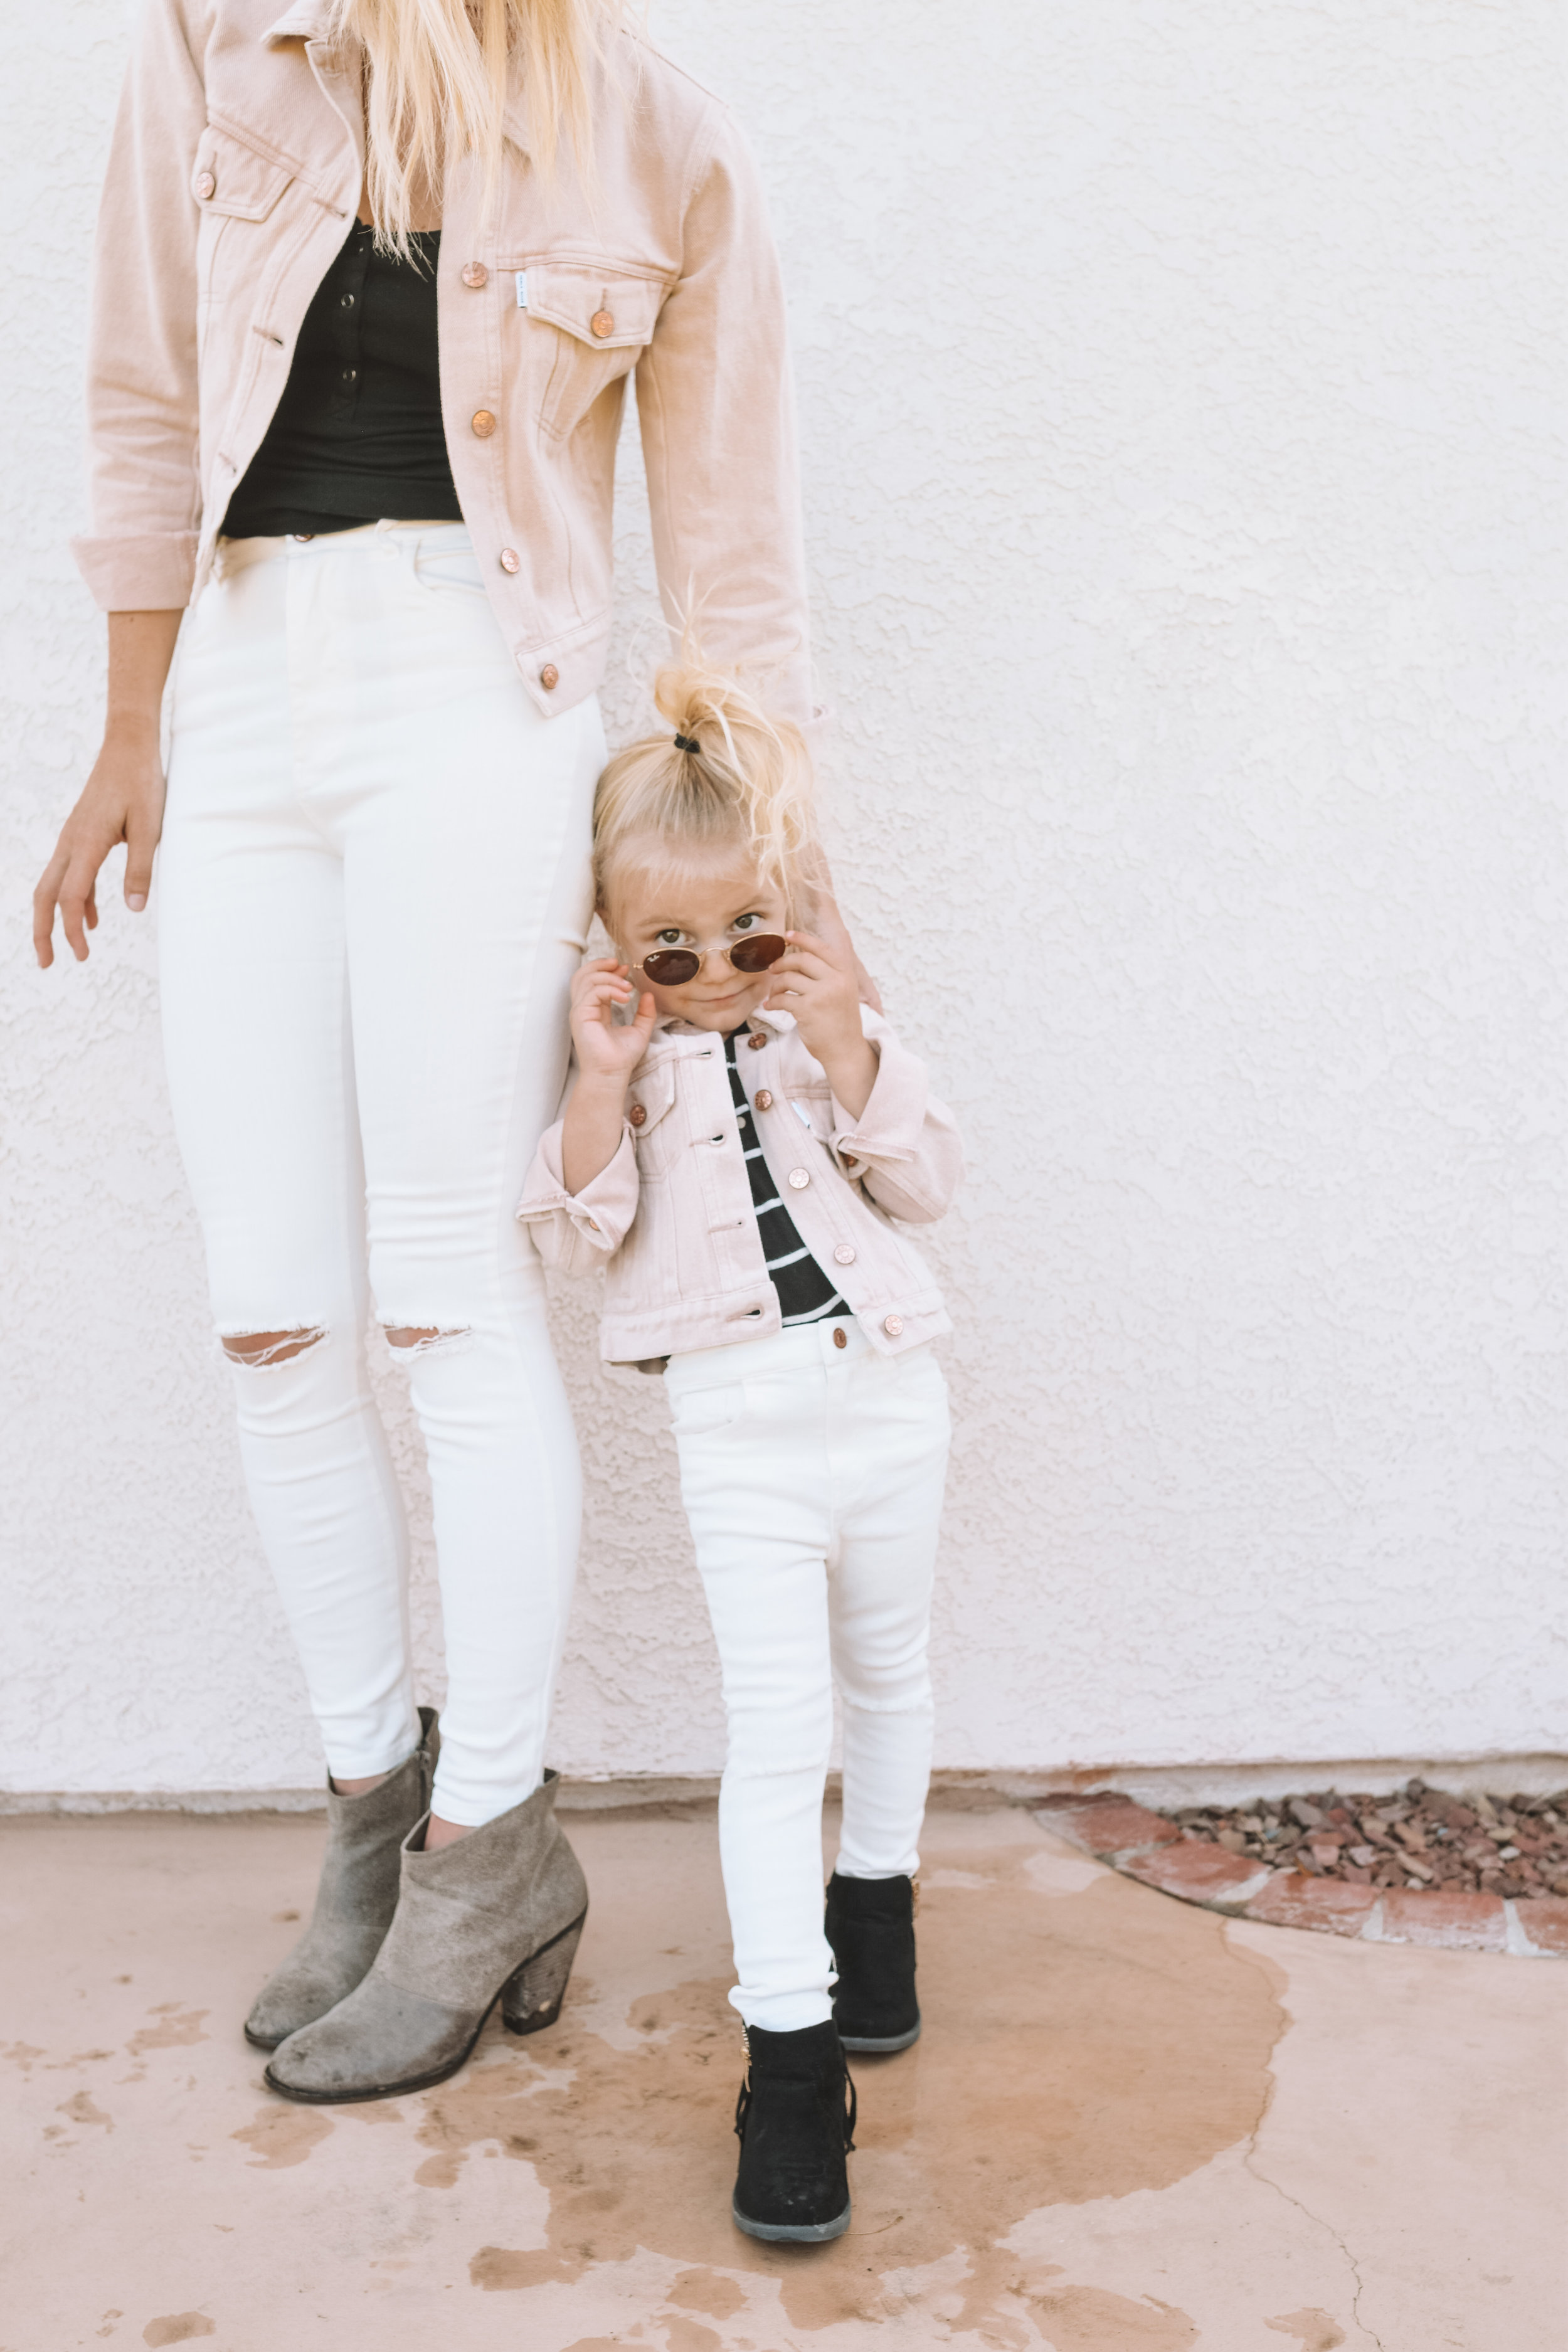 Merle Rose Mommy and Me Clothes Outfits Fashion - The Overwhelmed Mommy Blogger